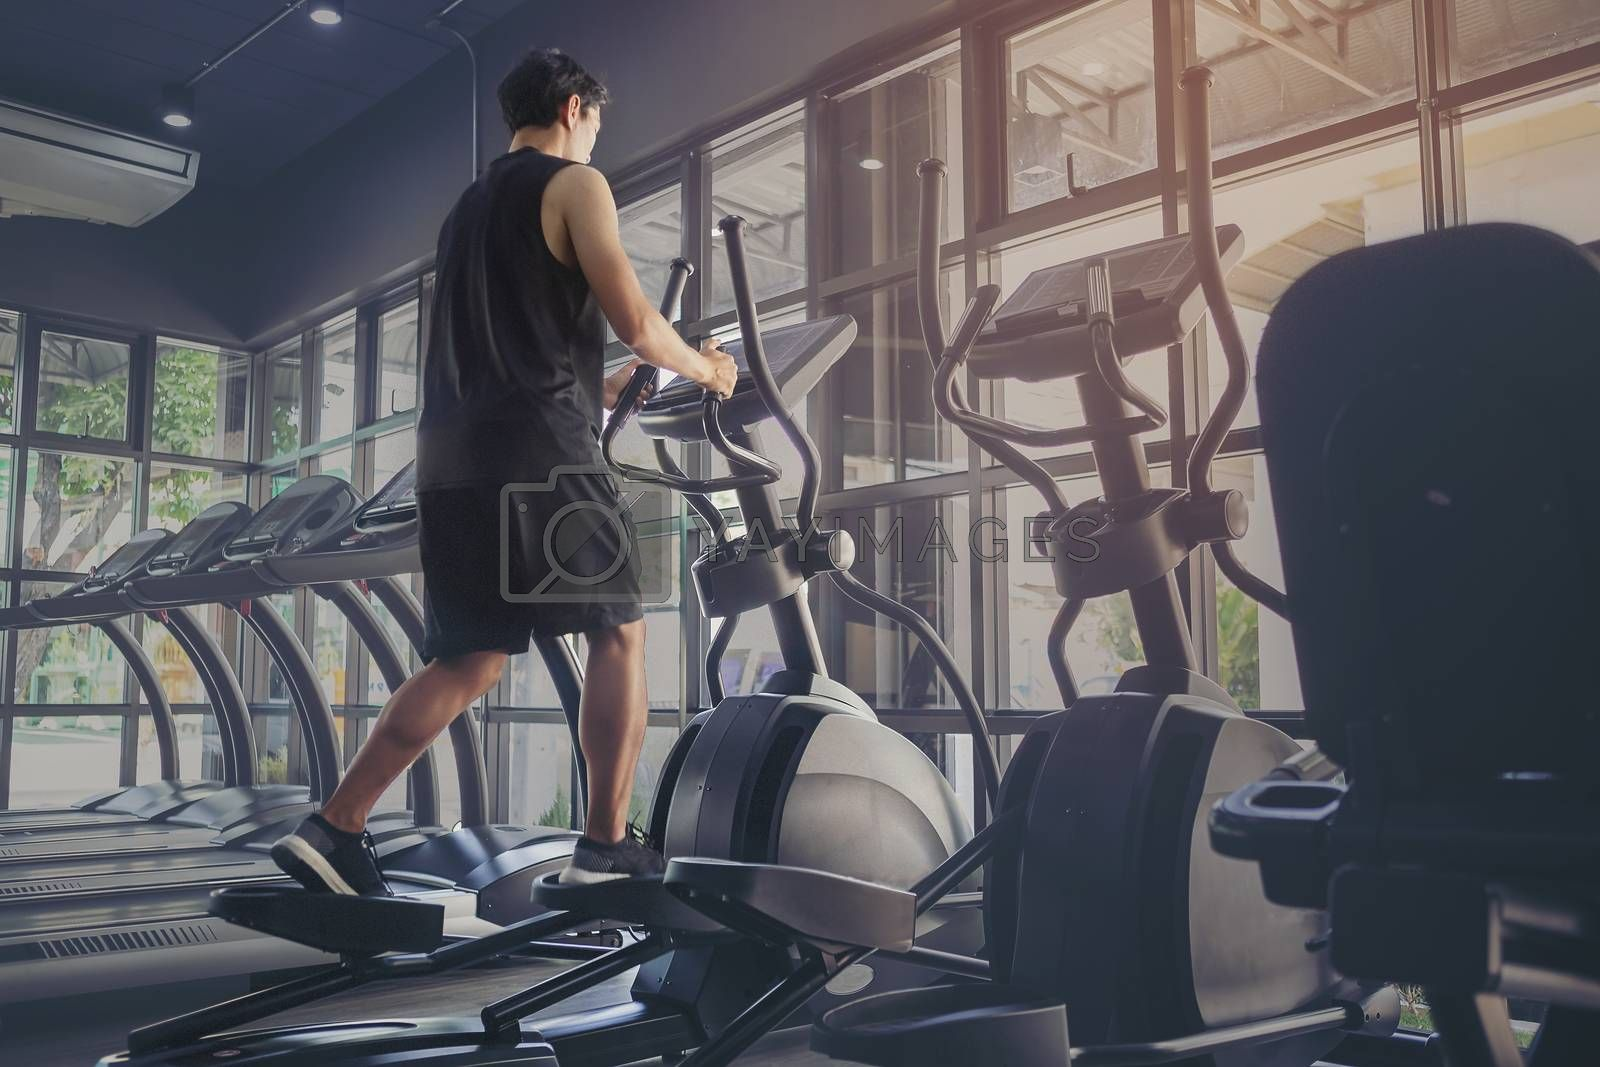 Young people running in machine treadmill at fitness gym club. Young sporty man and woman training in modern gym